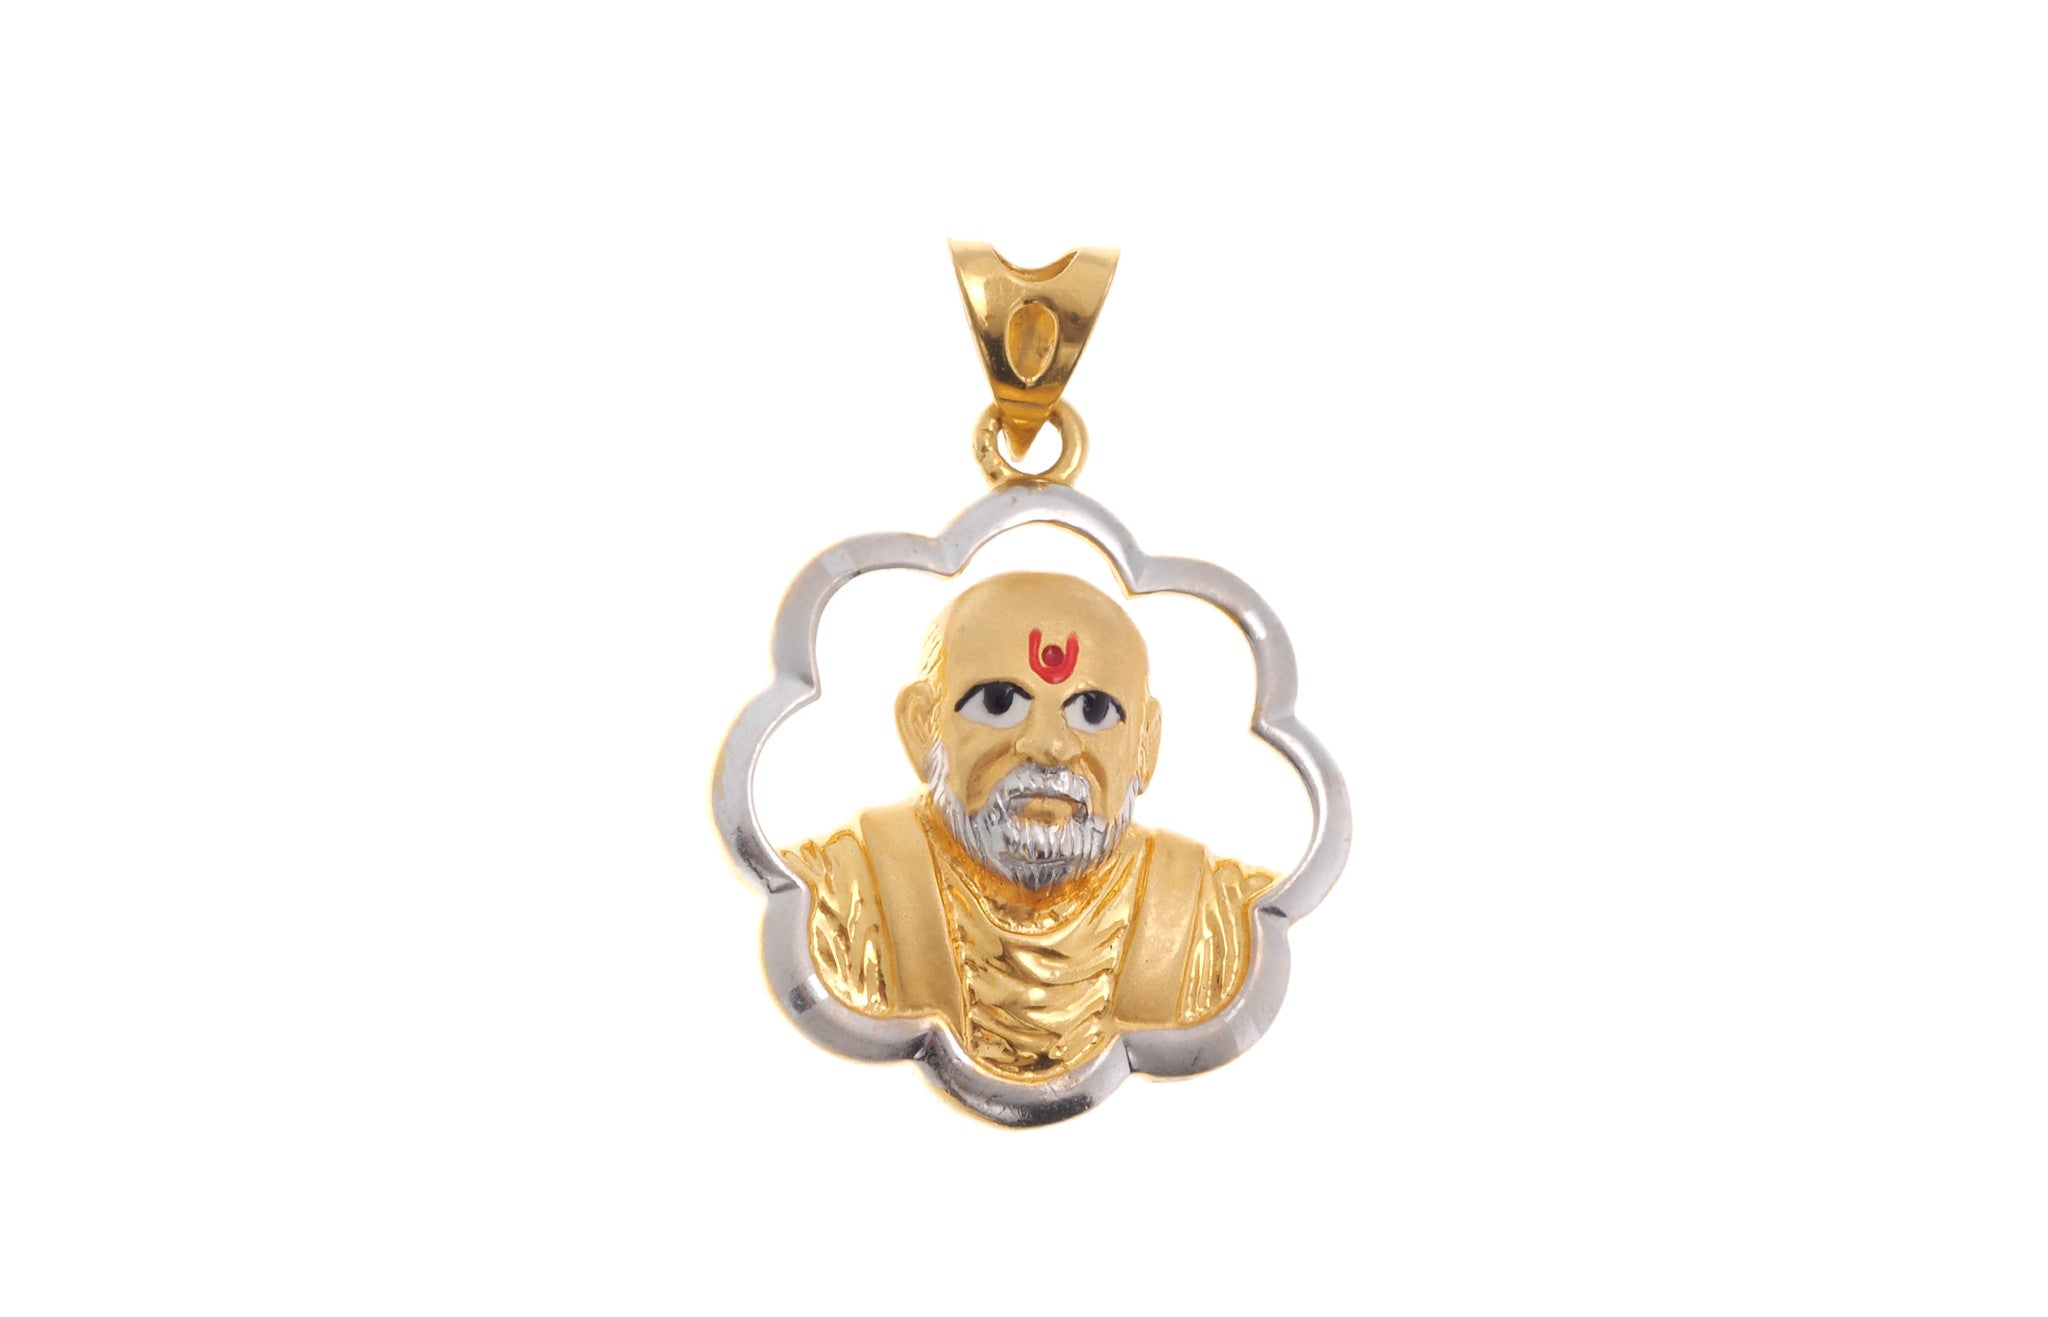 22ct Yellow Gold Pramukh Swami Pendant, Minar Jewellers - 2